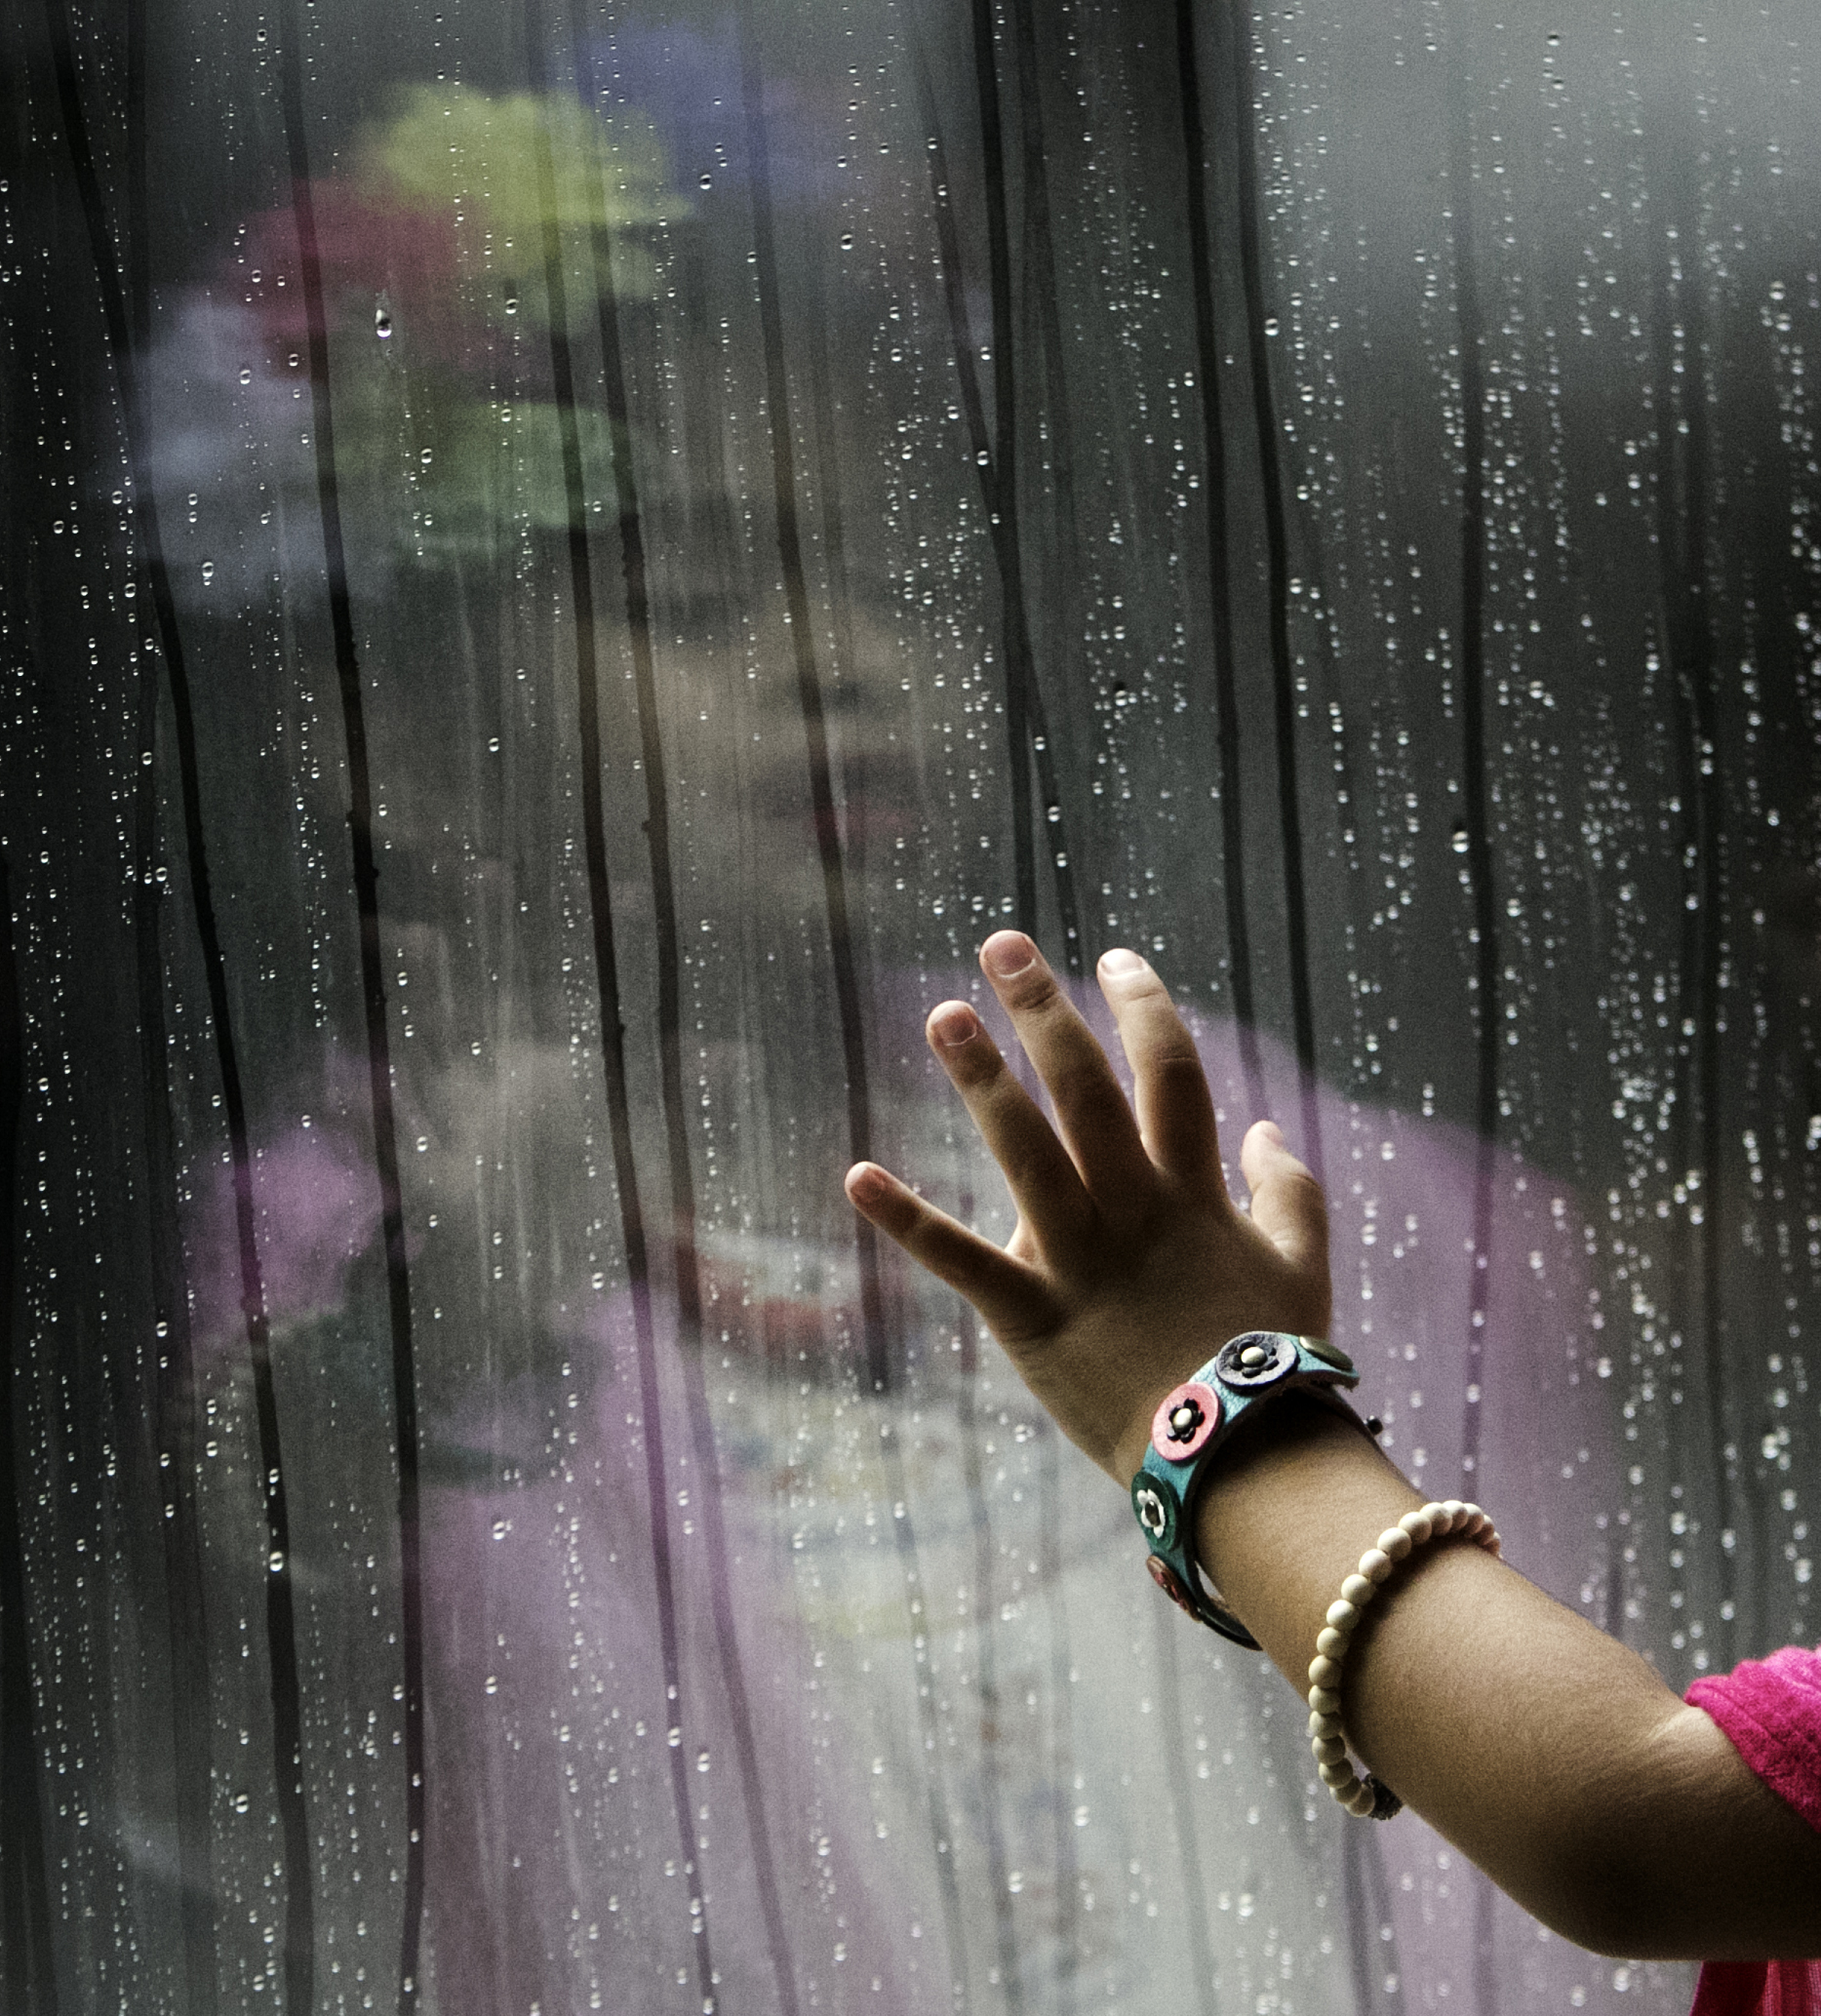 Marley Leyva 4, watches rain roll down a window during an attempt to break the Guinness World Record for the largest gathering of people dressed as Frida Kahlo in one location at the Dallas Museum of the Art in Dallas on July 6, 2017. (Tailyr Irvine/The Dallas Morning News)